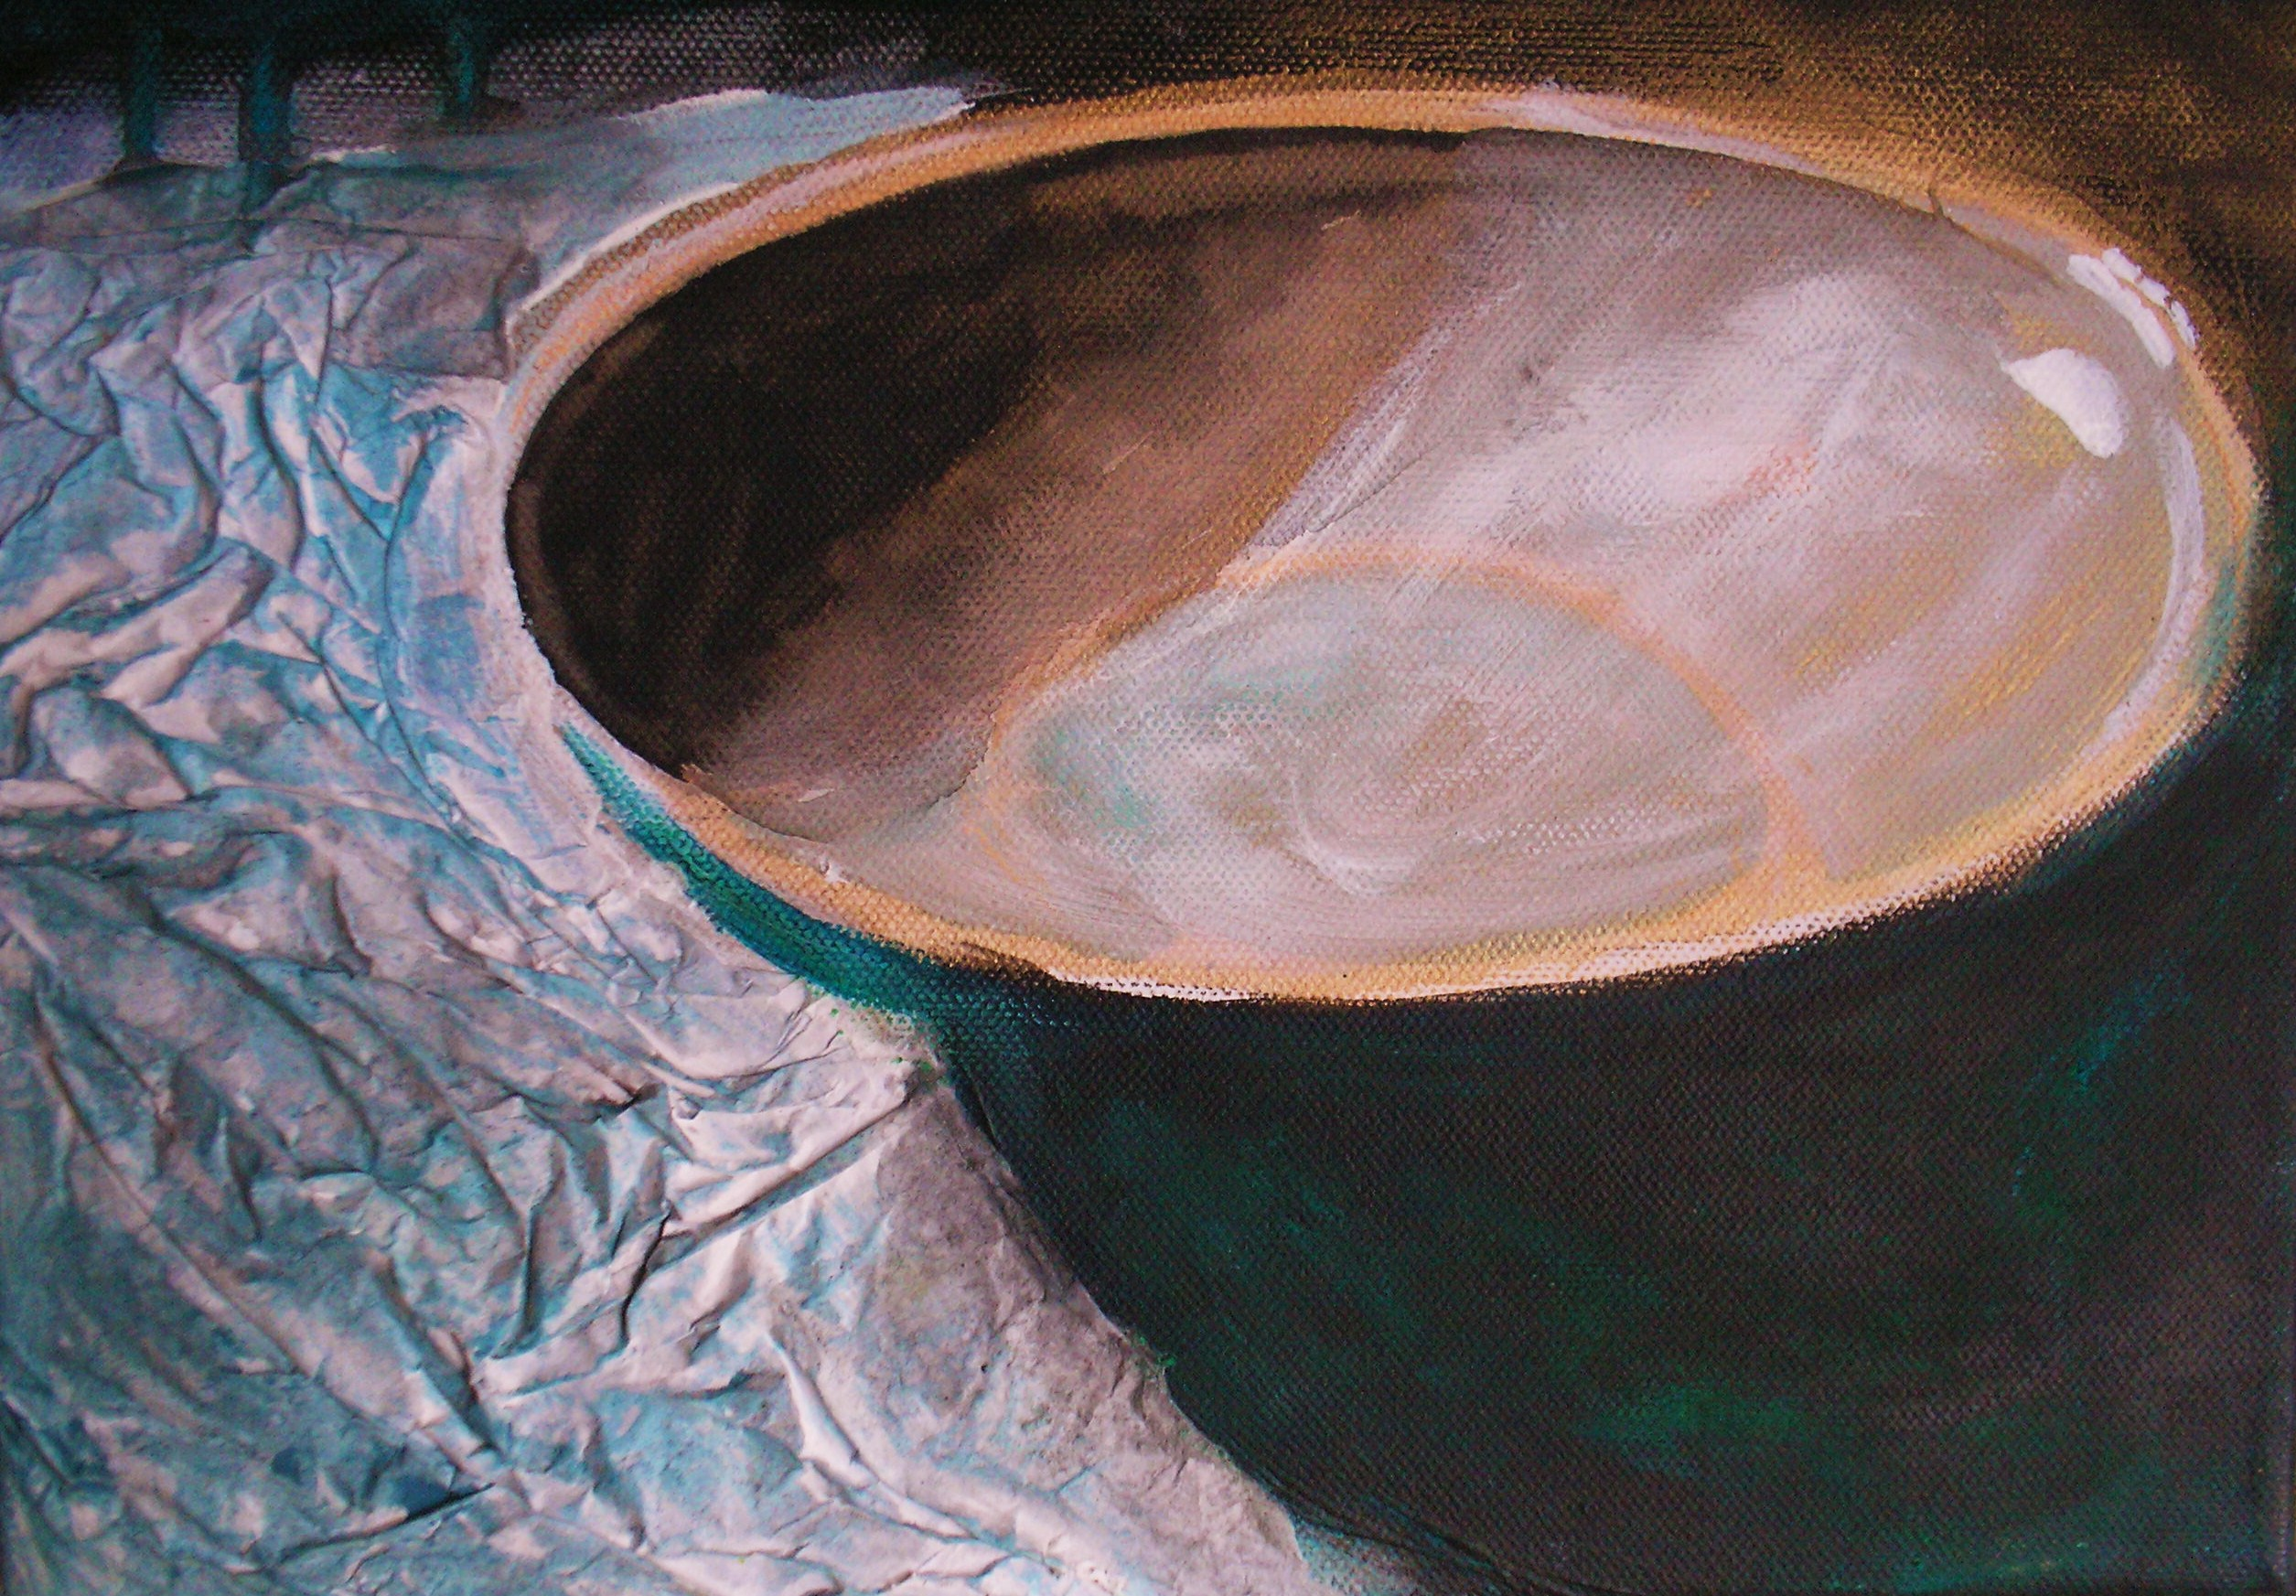 Mari's Bowl by Gail de Cordova at the Saffron Walden Gallery